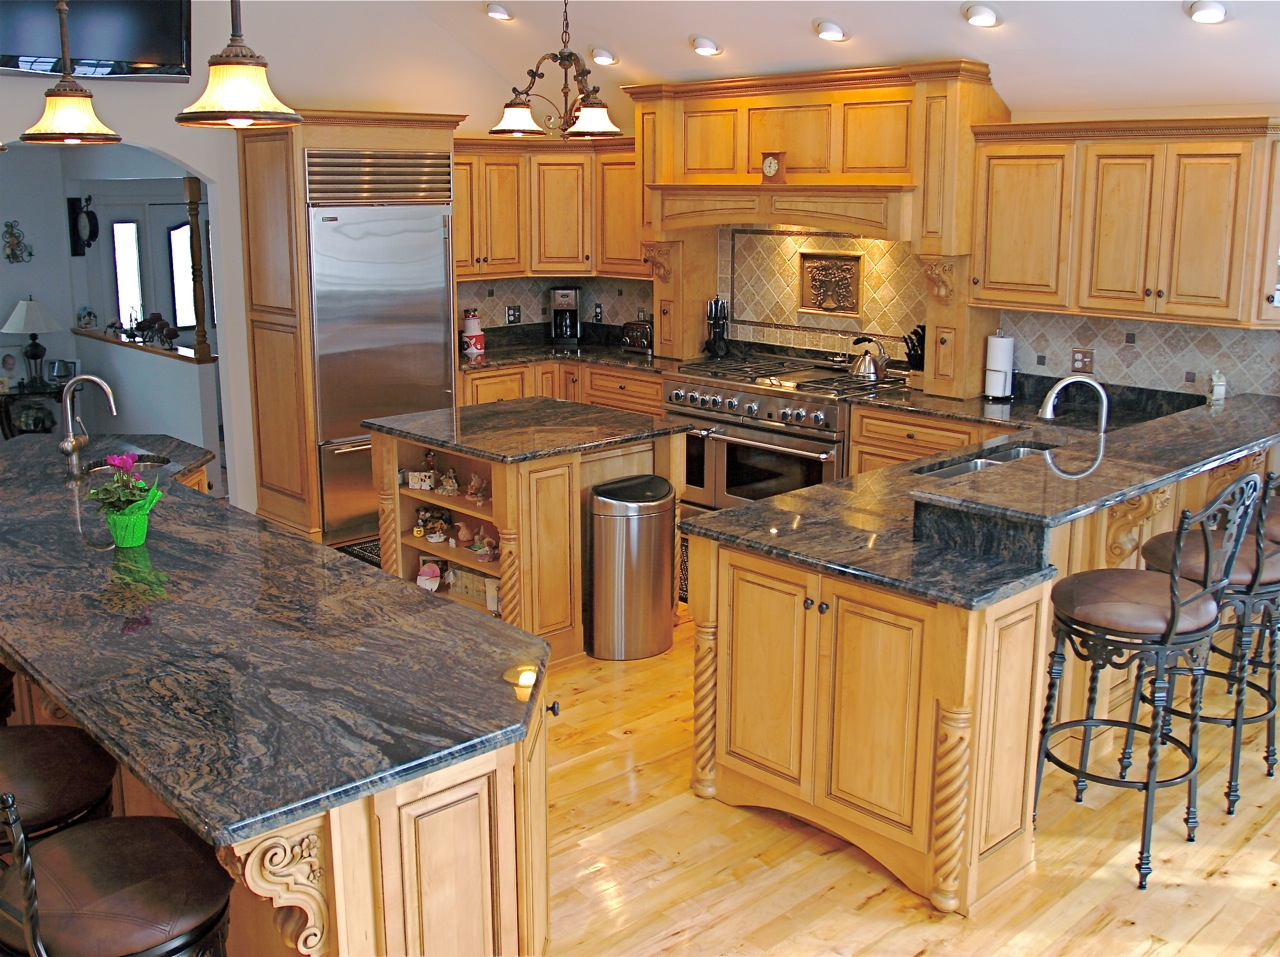 kitchen countertop laminate colors countertops for inspiration formica of best